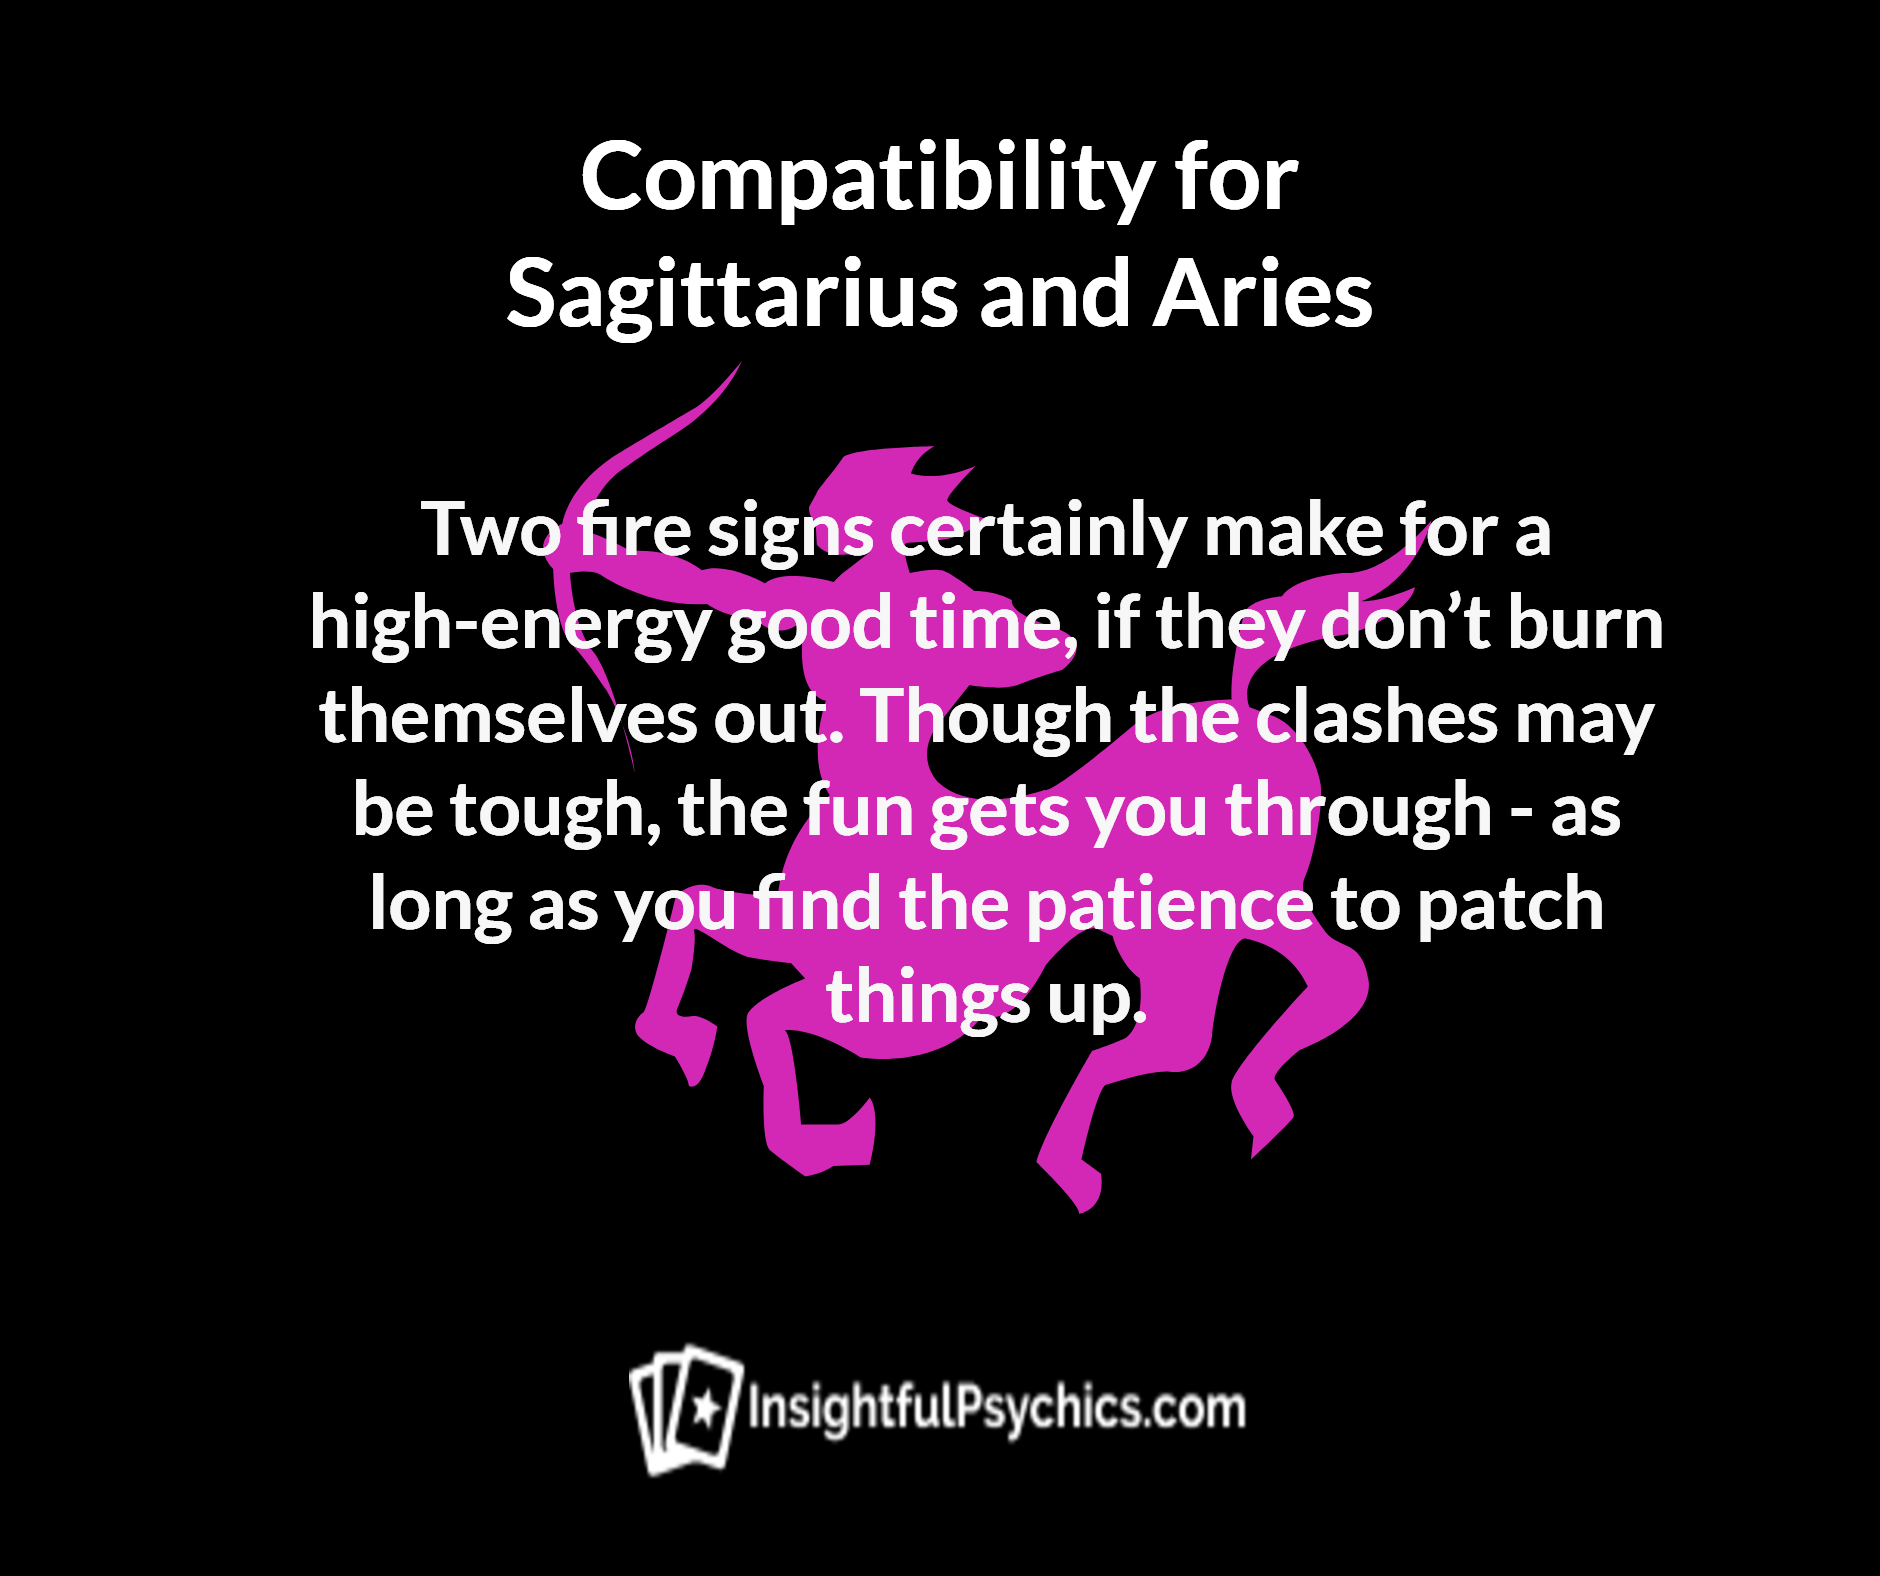 Sagittarius and Aries Compatibility - Fire + Fire